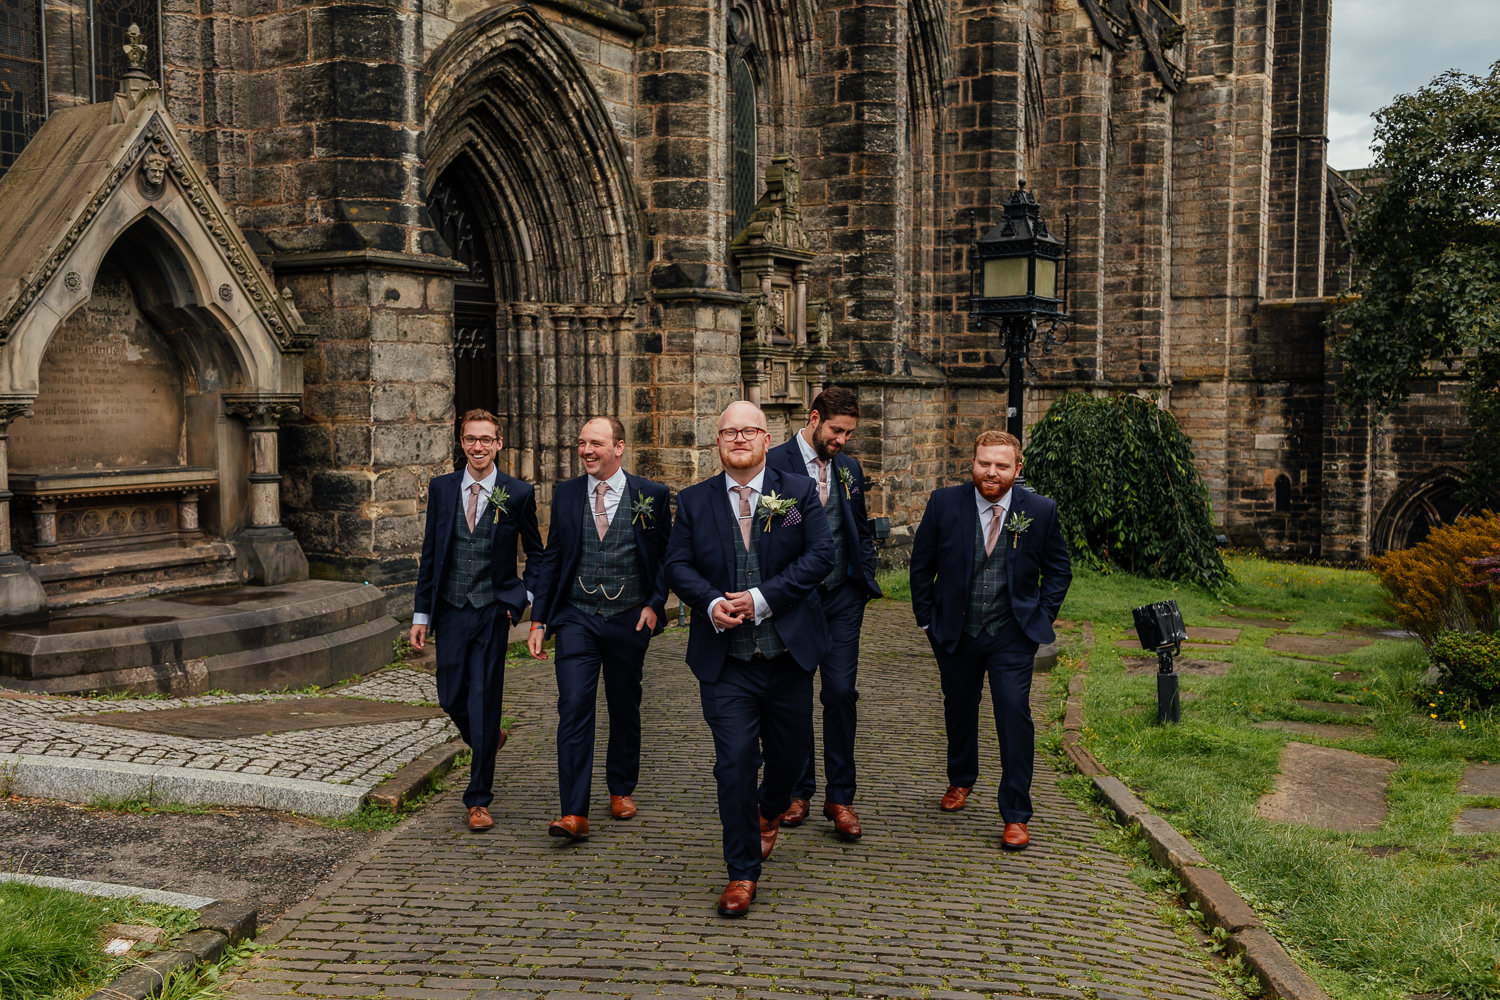 Glasgow Cathedral wedding groom groomsmen outside